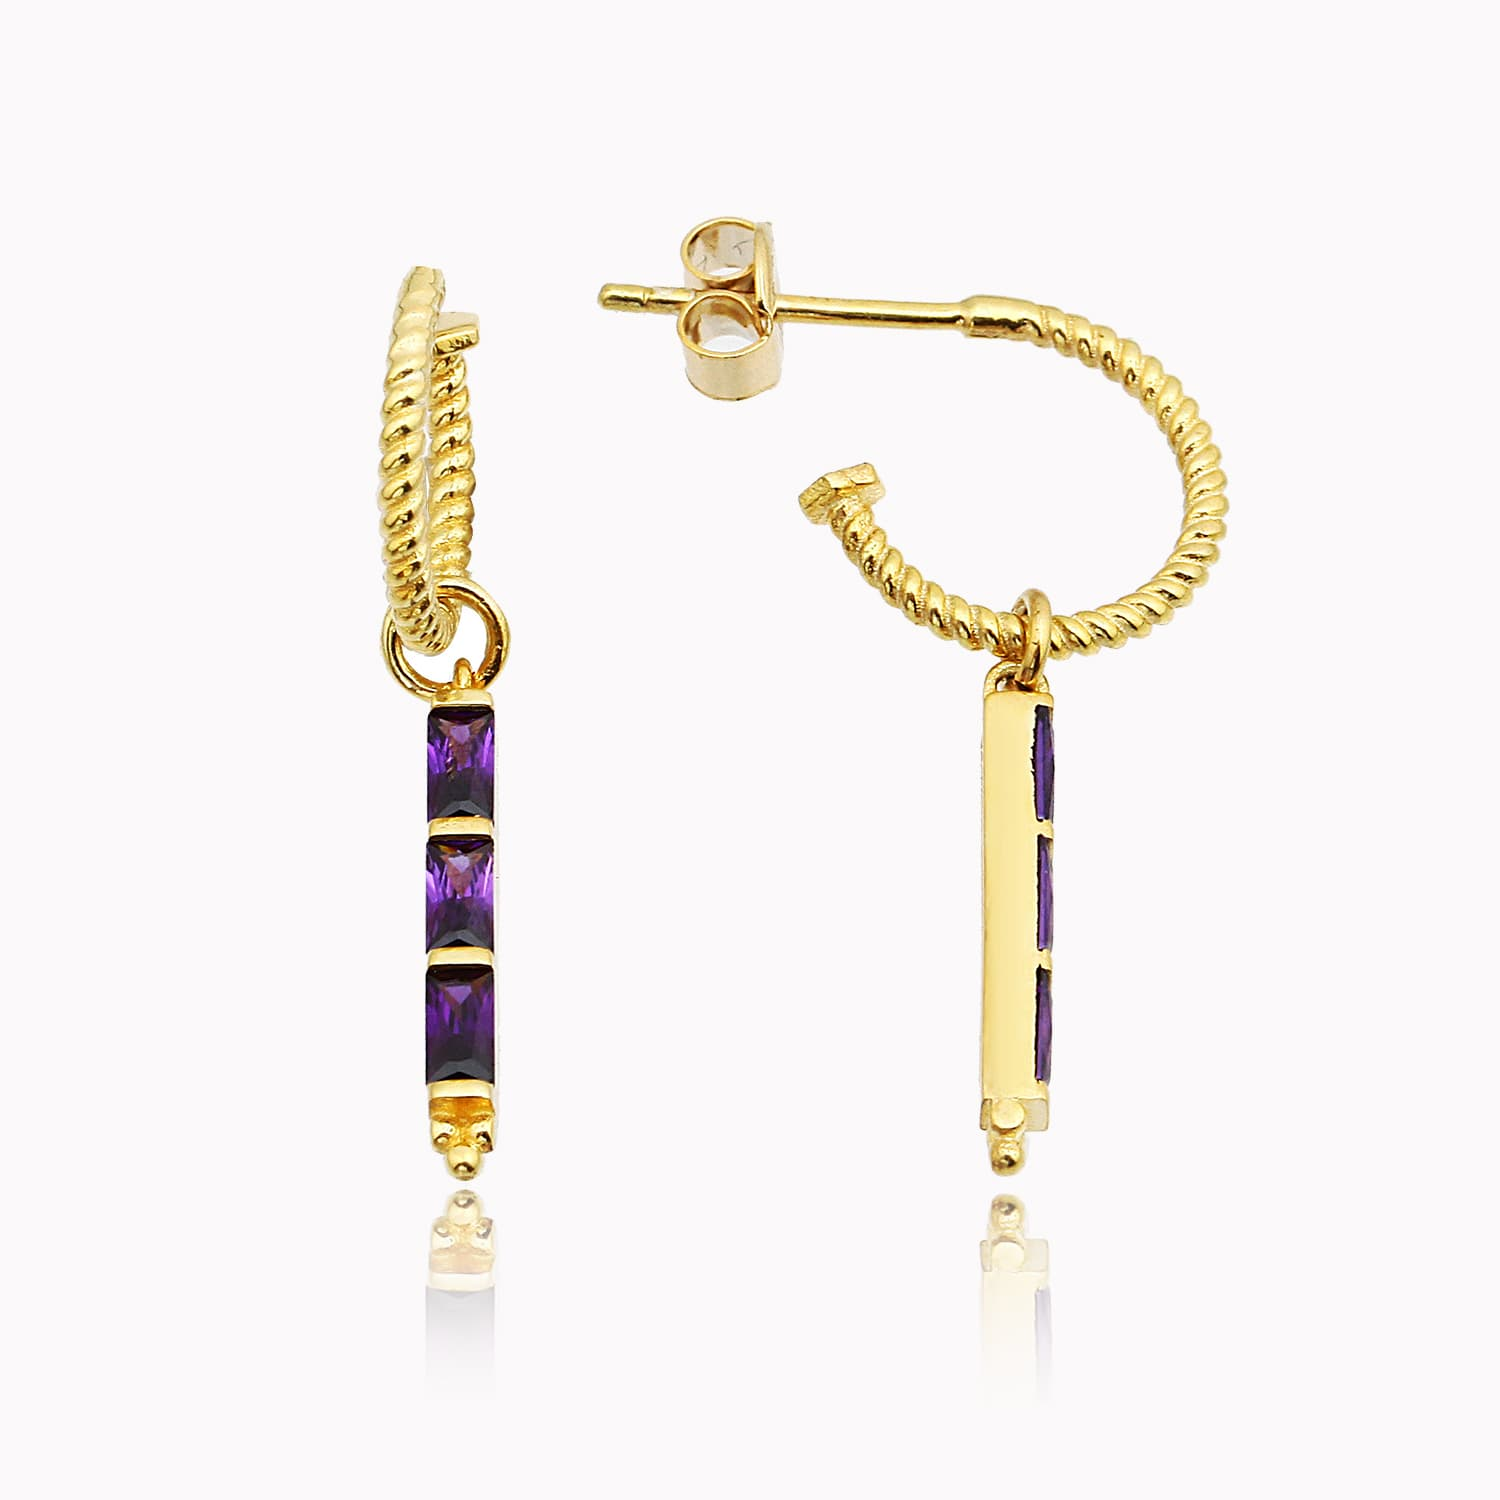 Gold plated minimal earring models